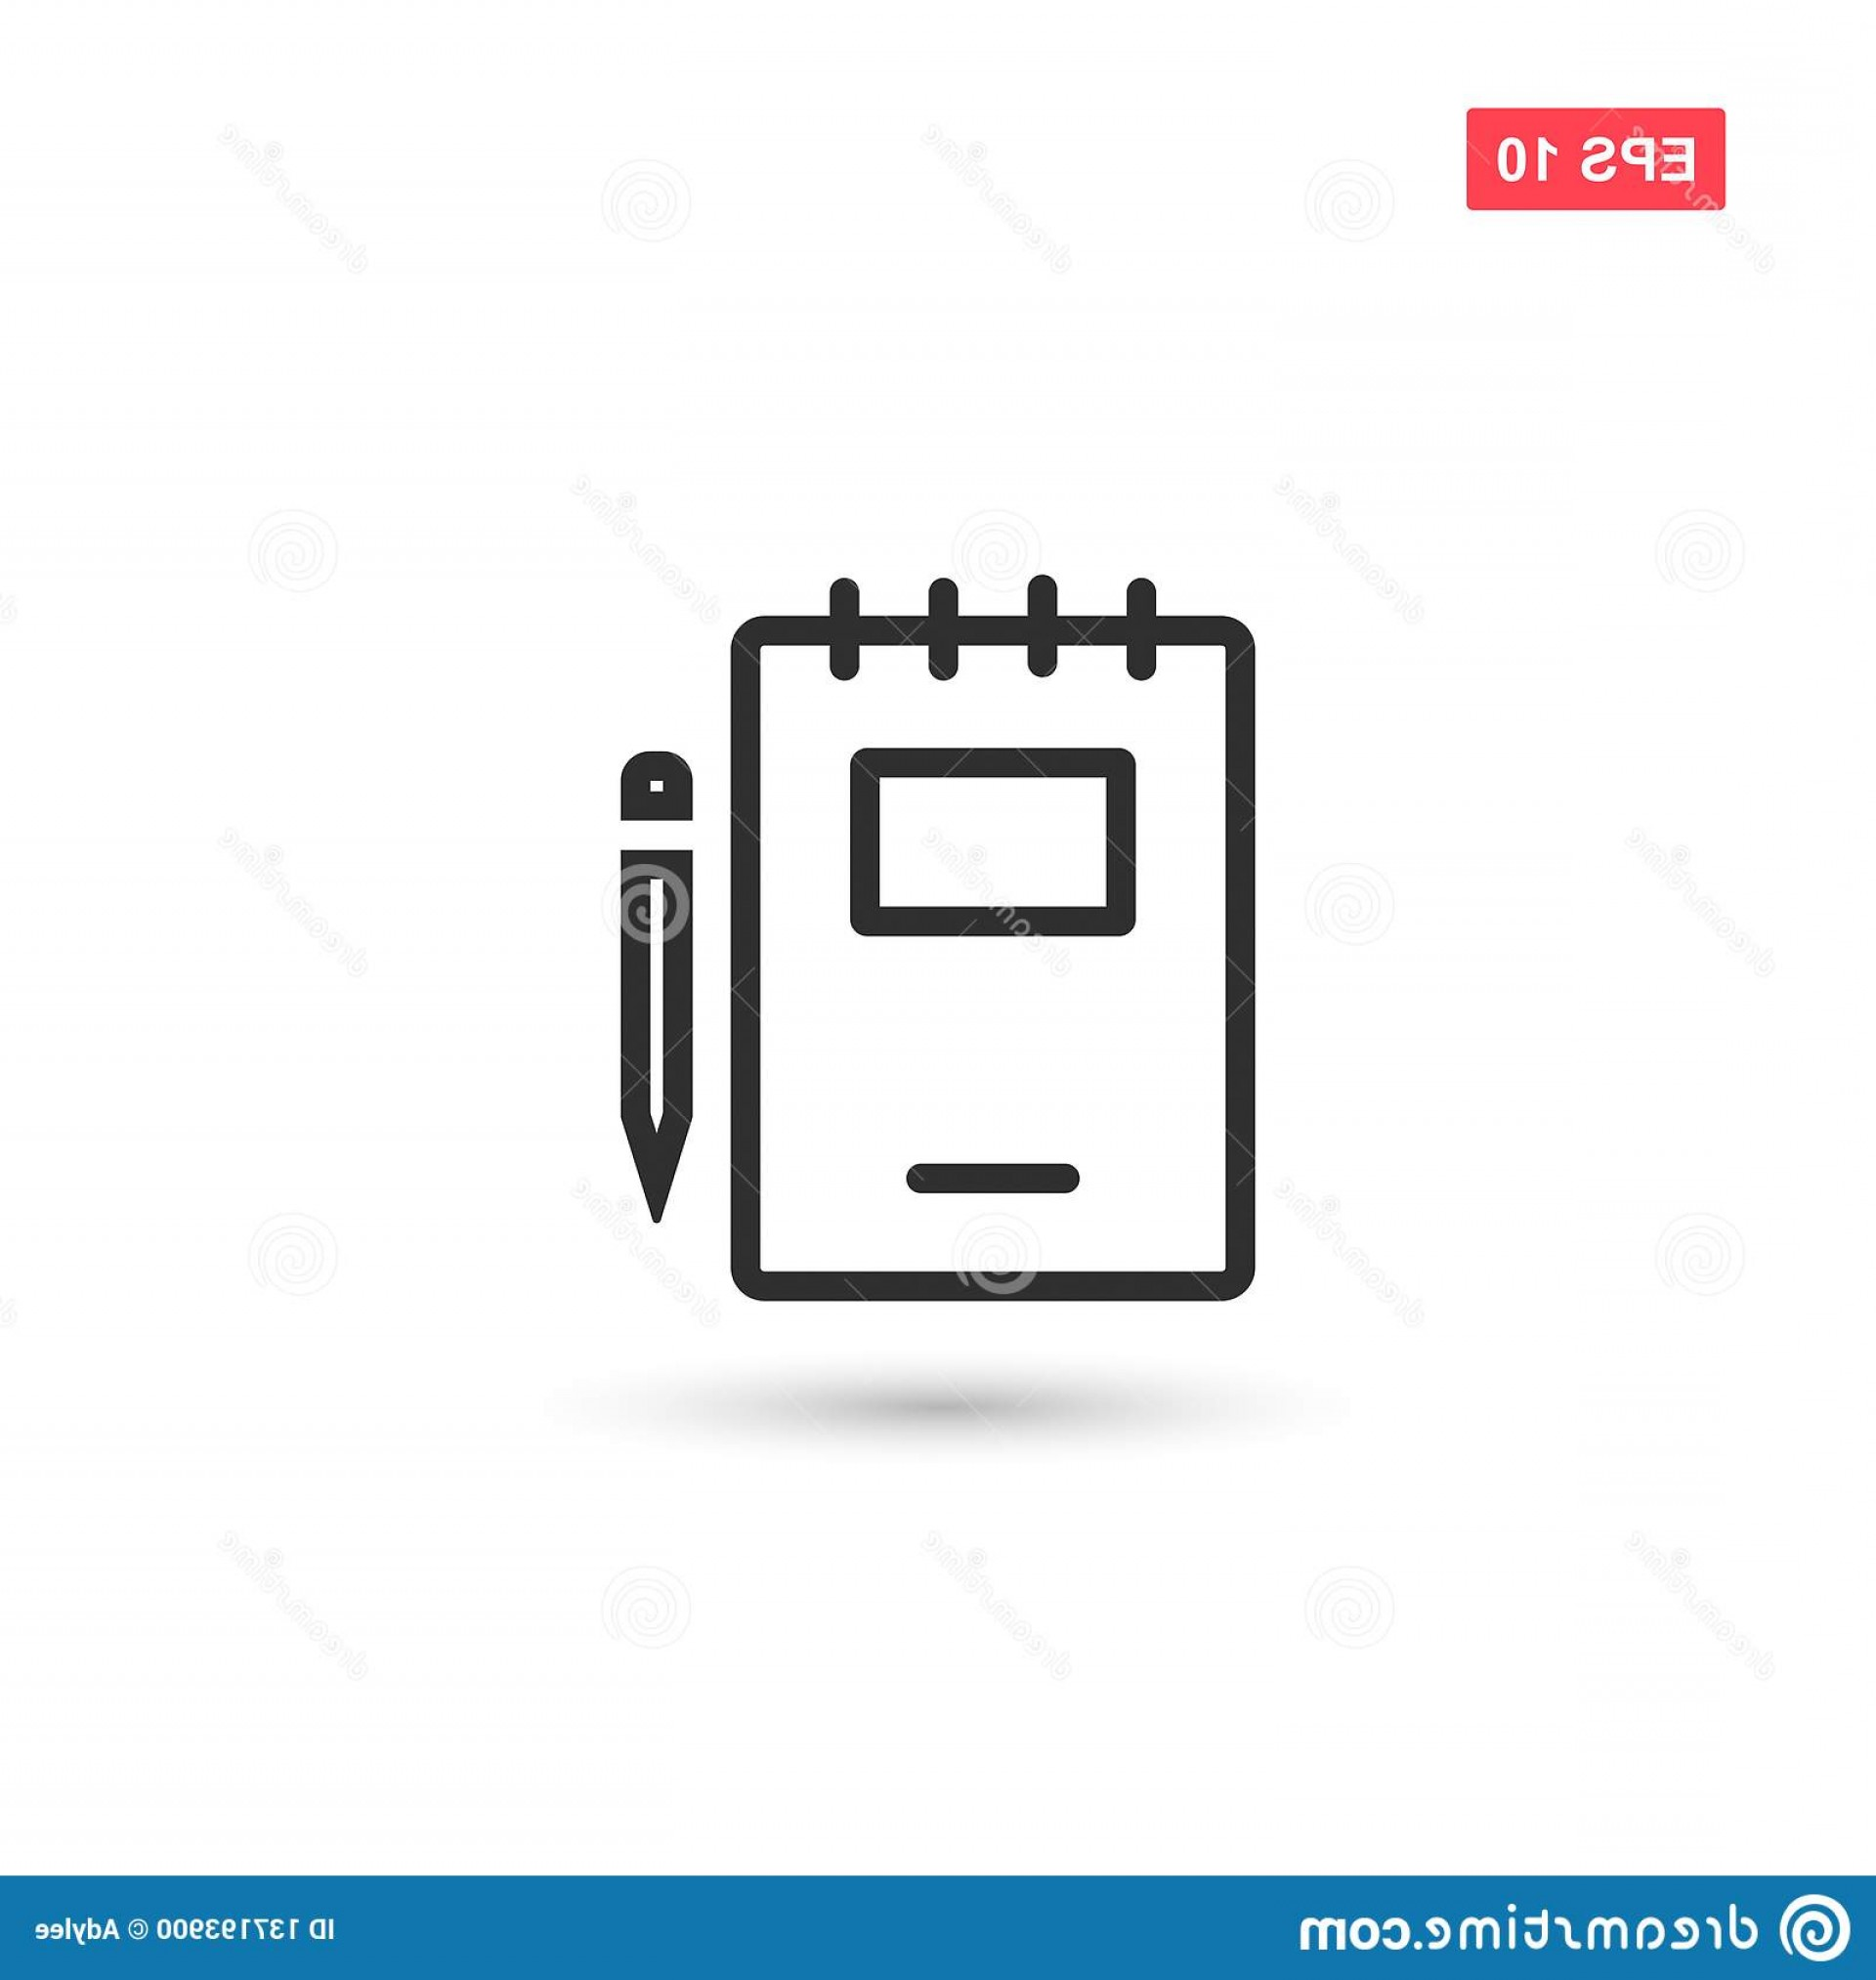 Paper And Pencil Icon Vector: Paper Notebook Pencil Icon Vector Design Isolated Eps Paper Notebook Pencil Icon Vector Design Isolated Image